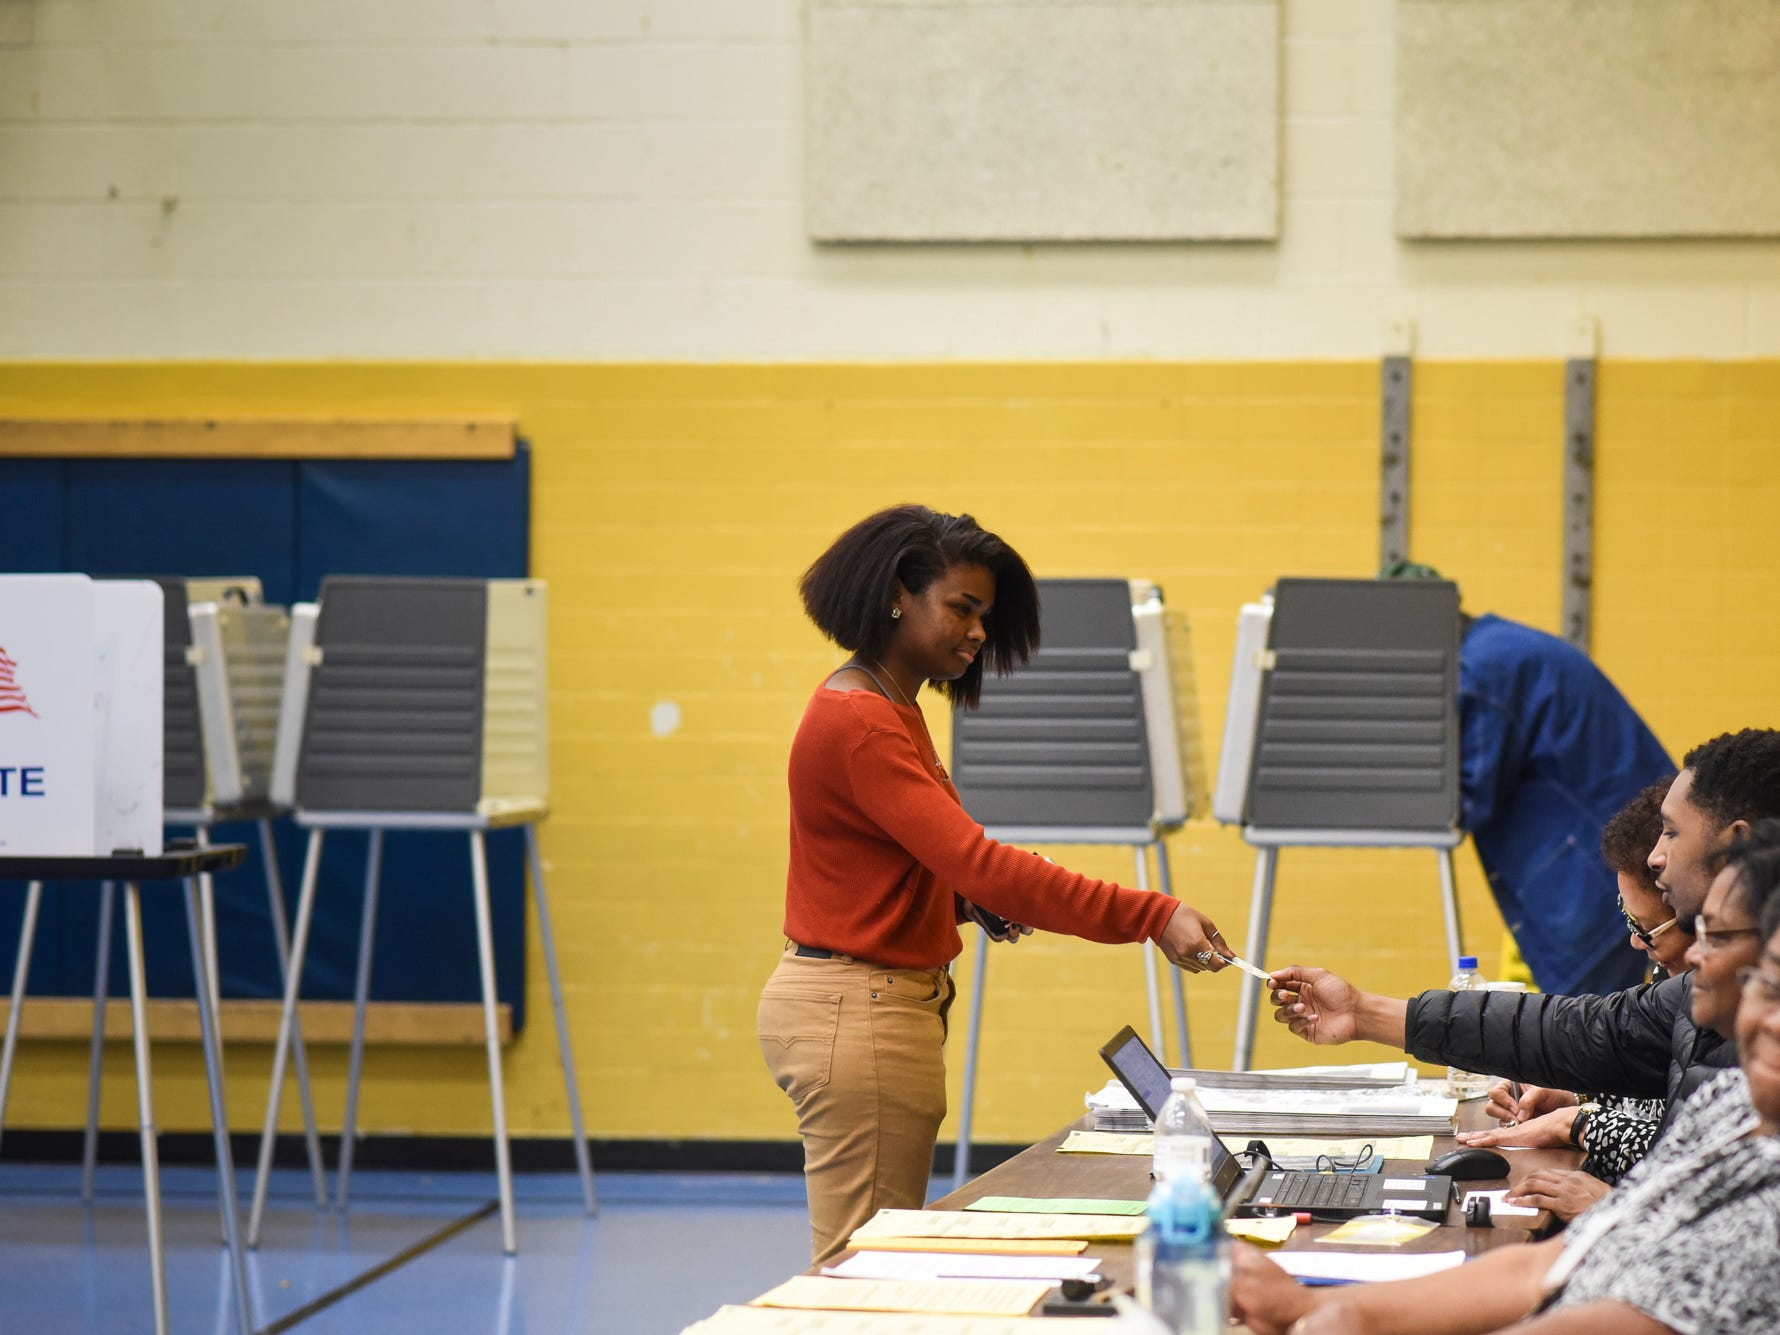 Thalia Wells, 19, of Lansing, hands her ID to an election official Tuesday evening, Nov. 6, 2018, at Willow School in Lansing.  It is her first time voting, and said Proposal One is her primary reason for voting.